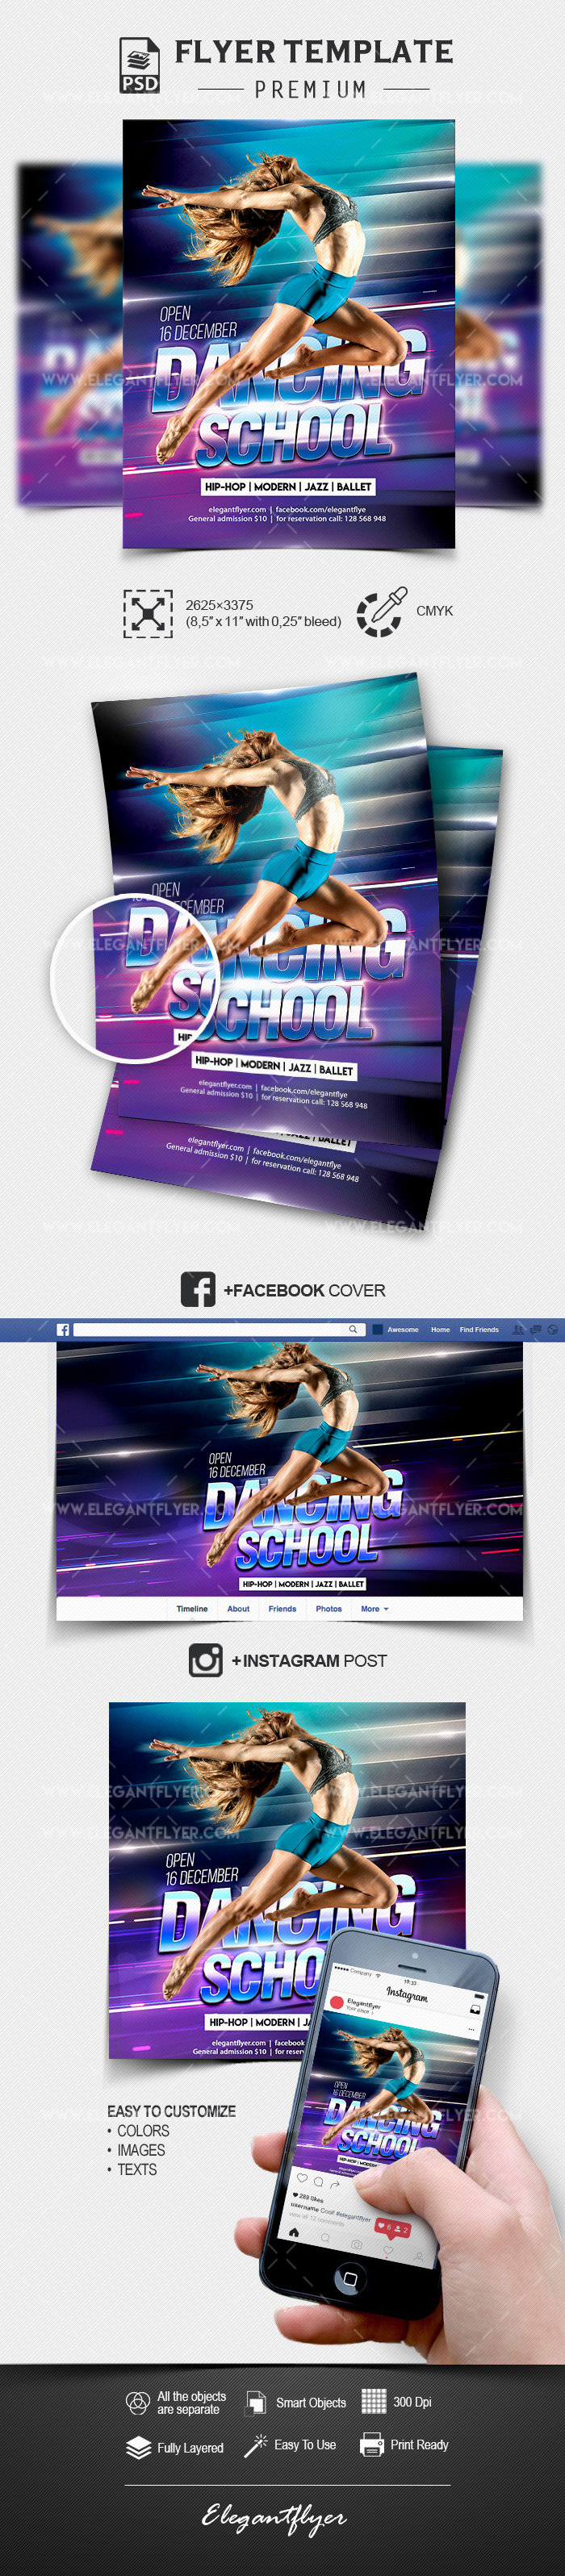 Dancing School – PSD Flyer Template + Facebook Cover + Instagram Post